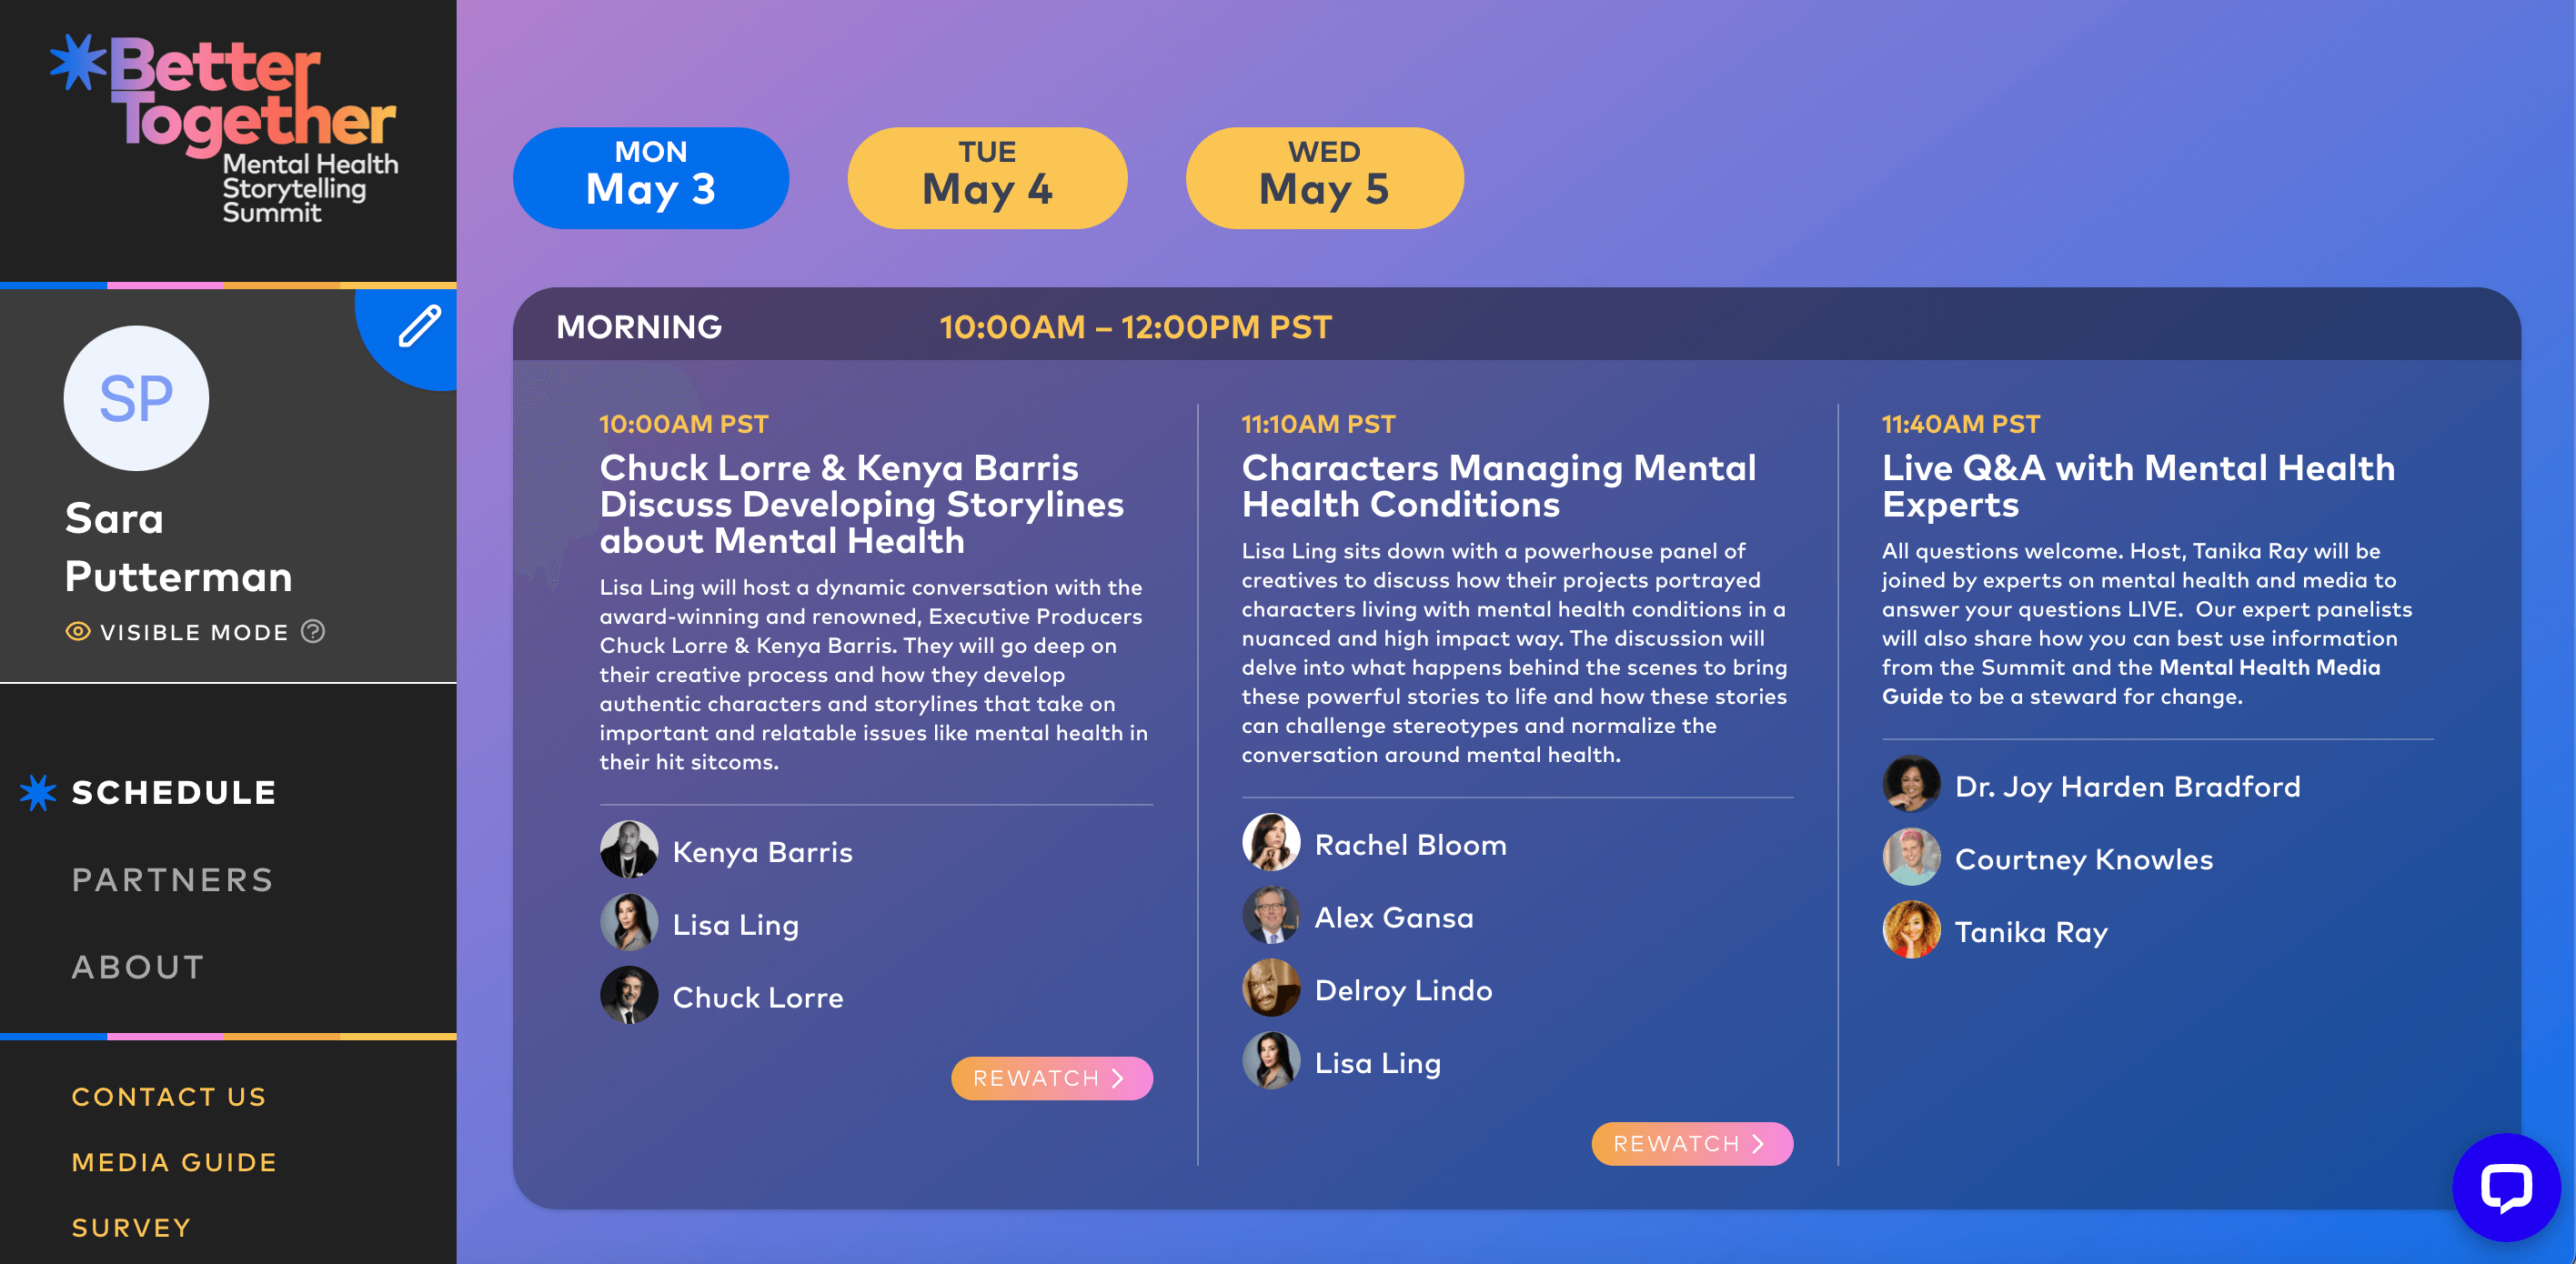 View of MTV microsite with event schedule